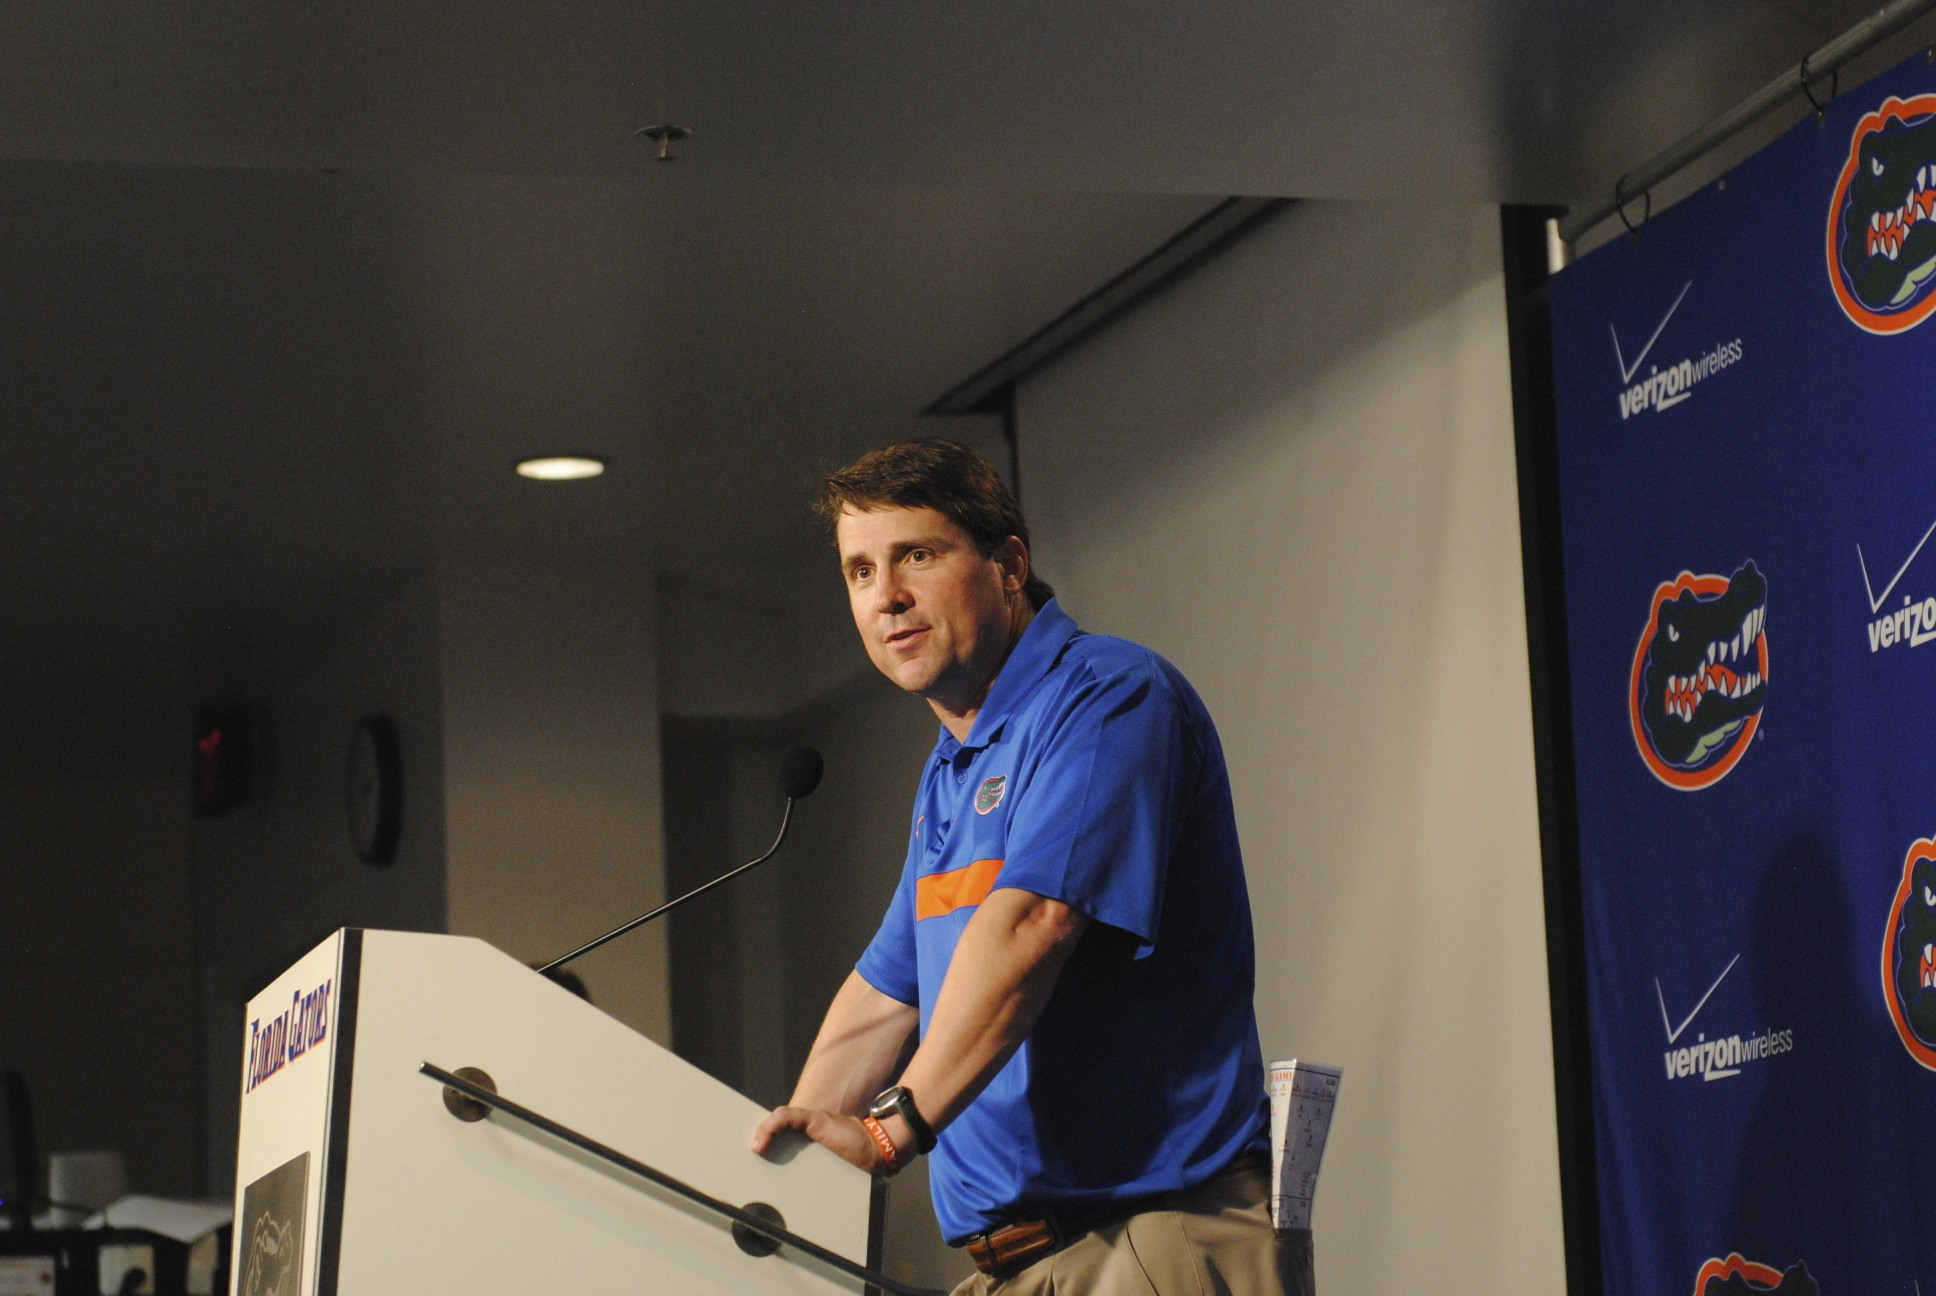 Will Muschamp during the post-game of Saturday's Orange and Blue Debut.